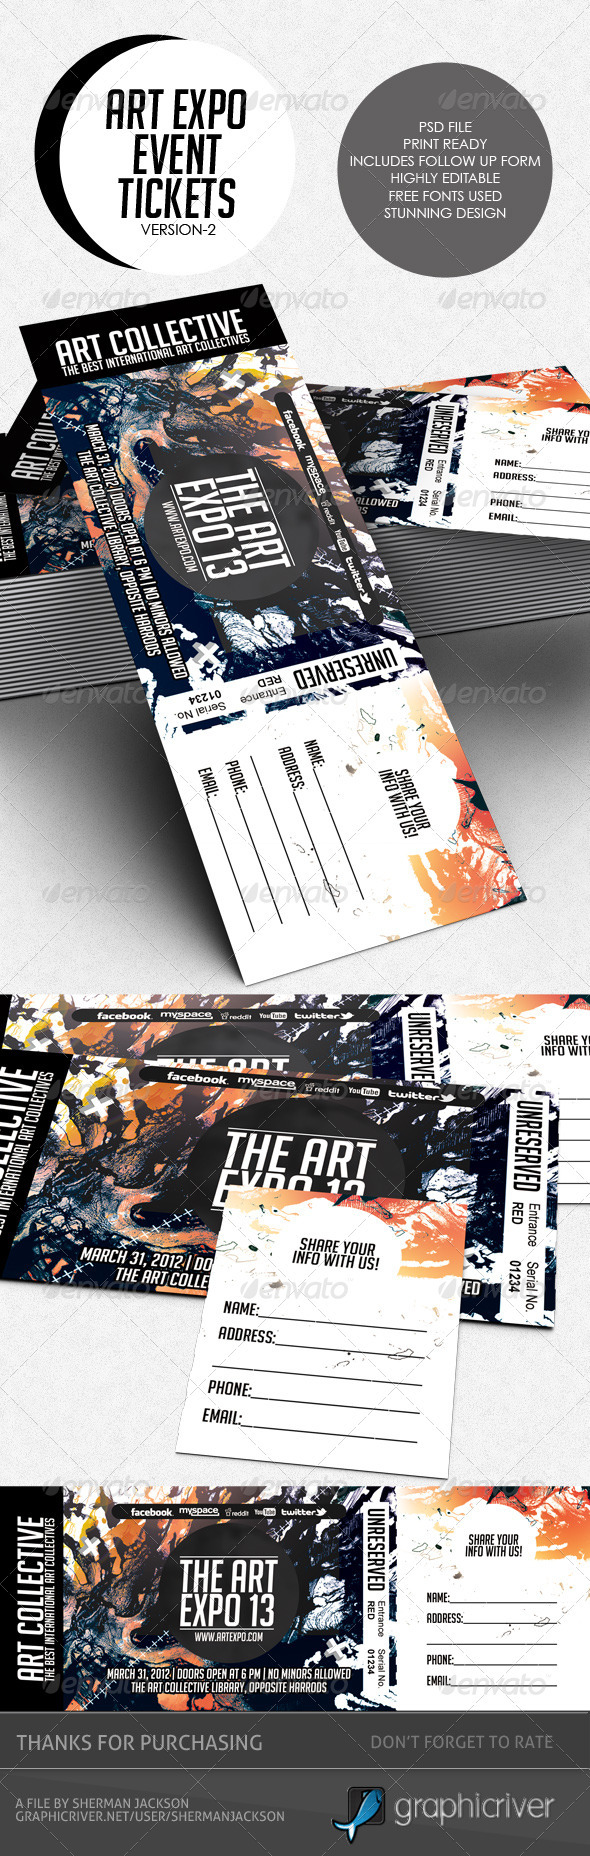 Art Expo Art Show Event Tickets & Passes V.2 - Miscellaneous Print Templates